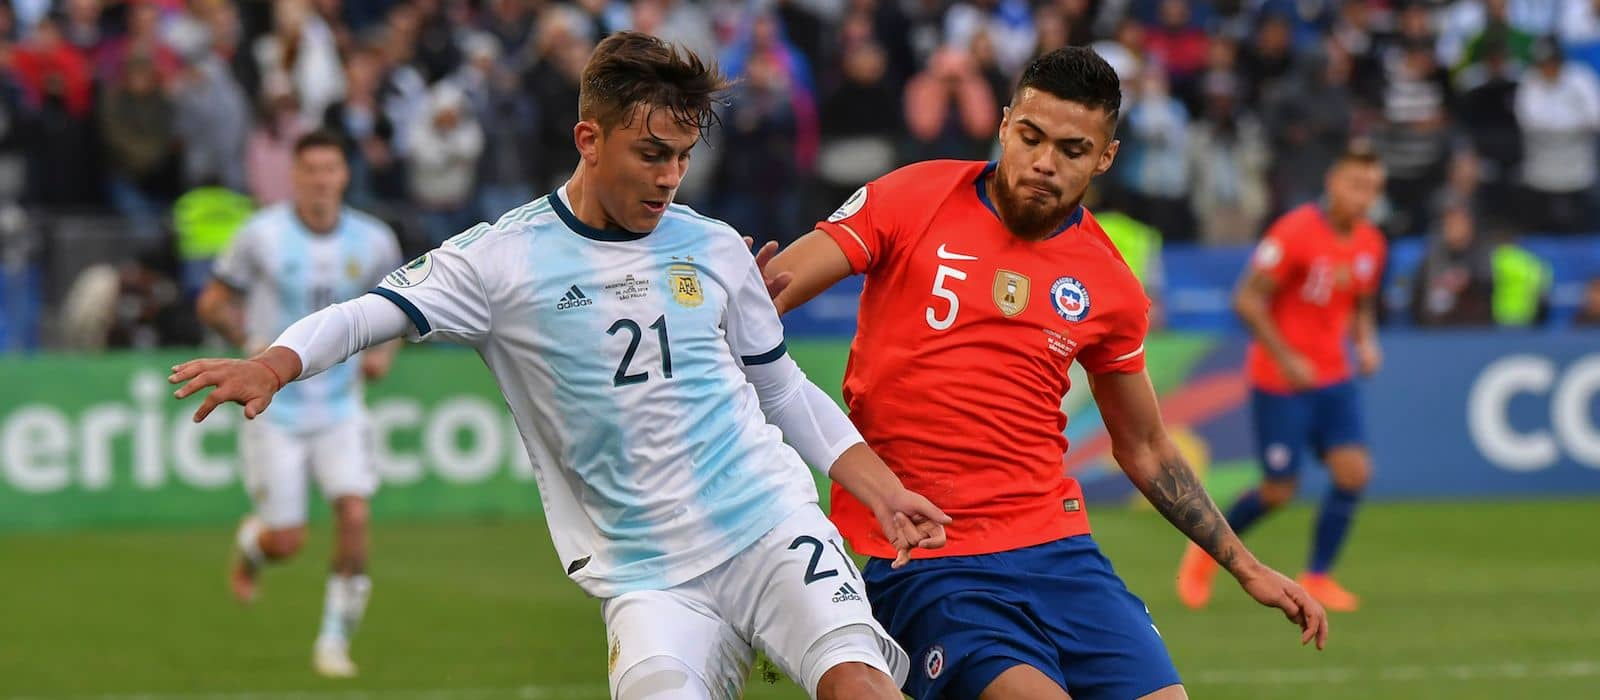 From Italy: Juventus tell Paulo Dybala to join Manchester United